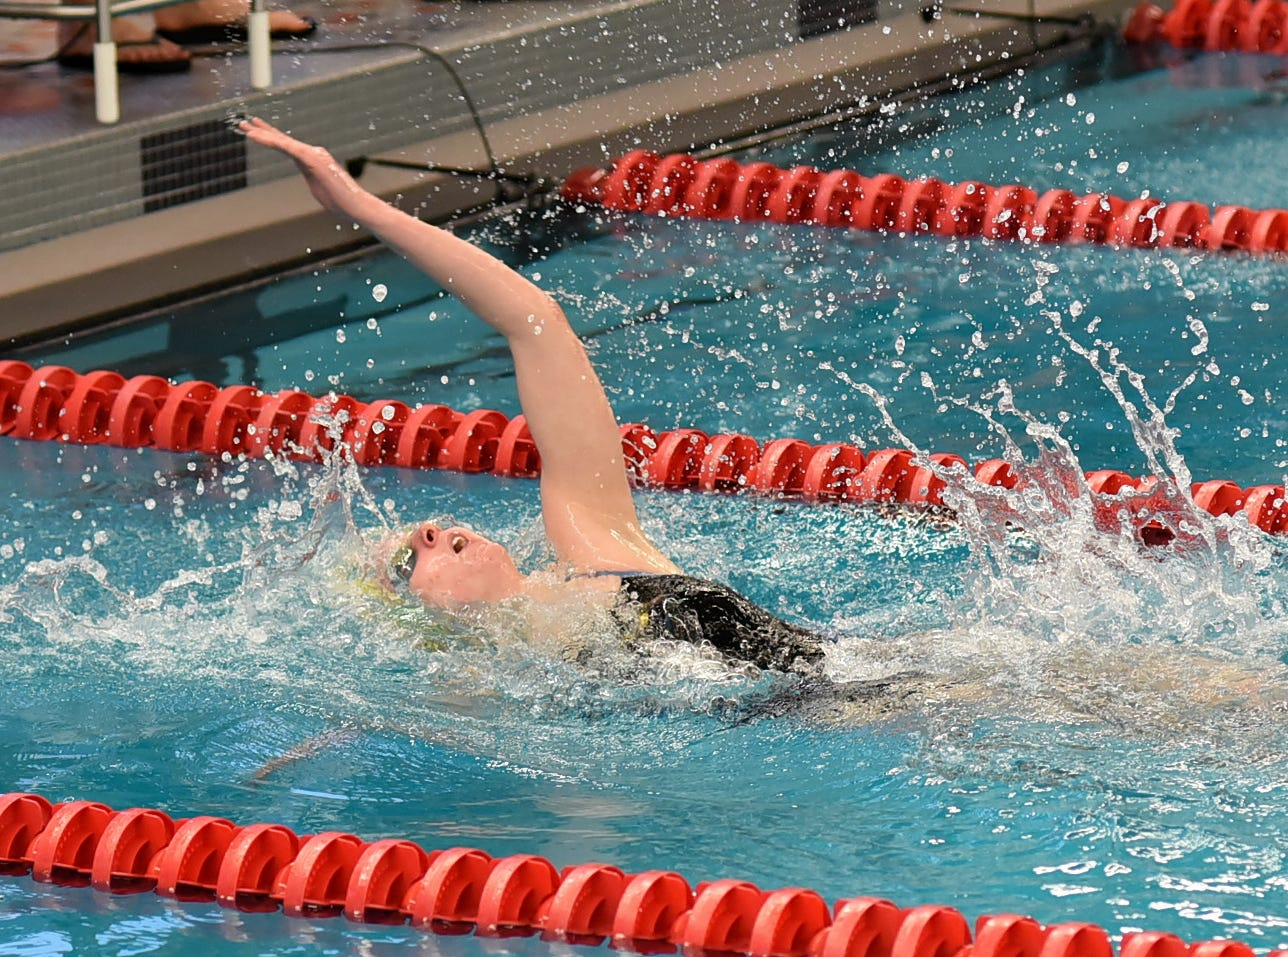 Emma Fortman of Madeira finished the last stroke of the girls 100 backstroke preliminaries in first place at the Southwest Ohio Swimming and Diving Classic, January 19, 2019.